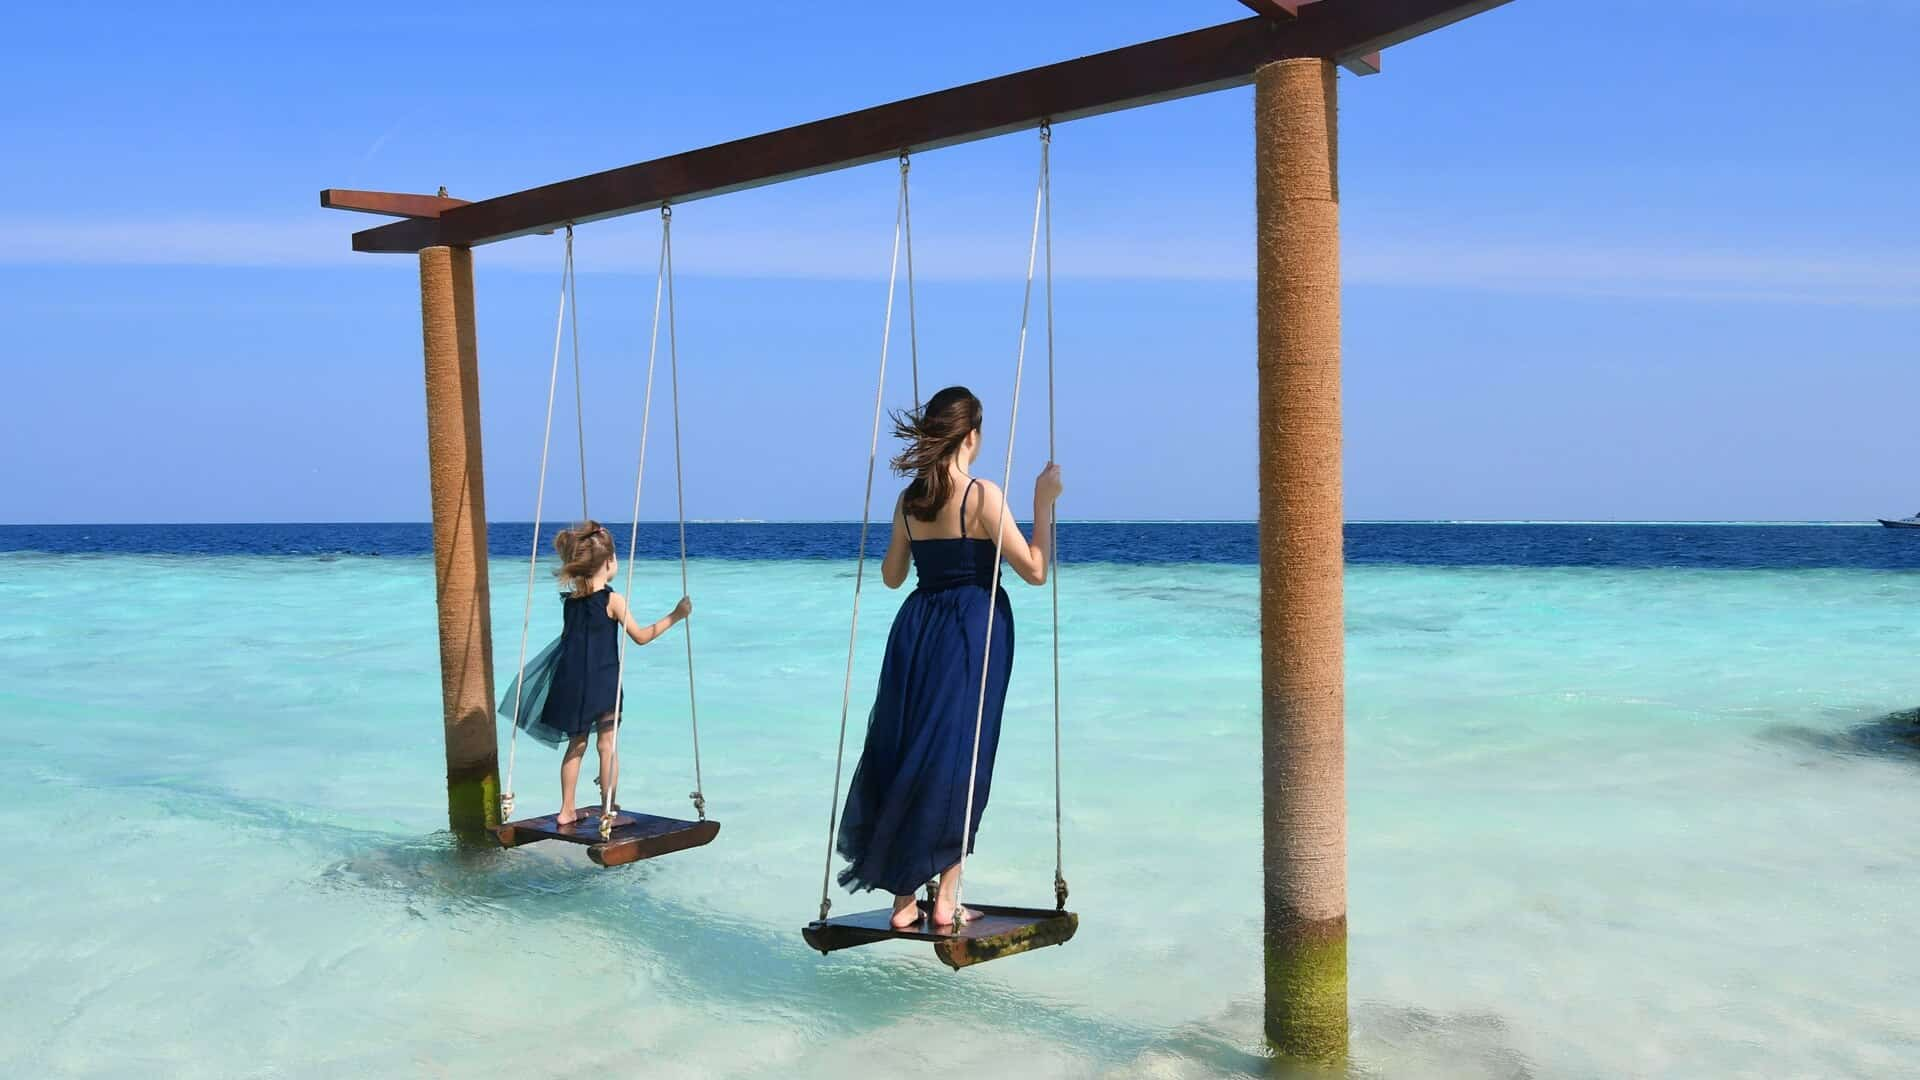 Mom and daughter on a swing in the Maldives sea